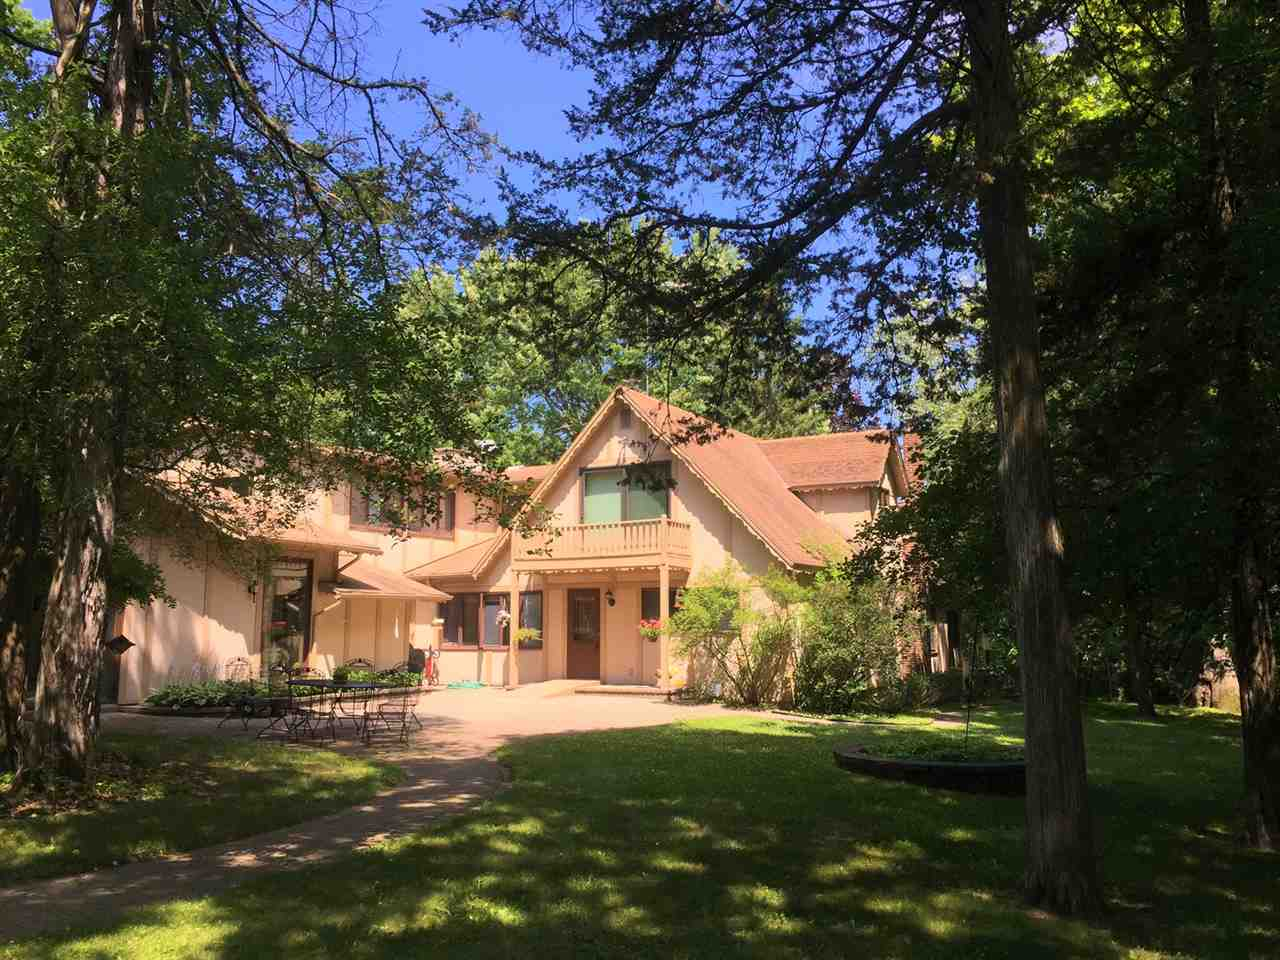 W1430 Spring Grove Rd, Green Lake, WI 54971